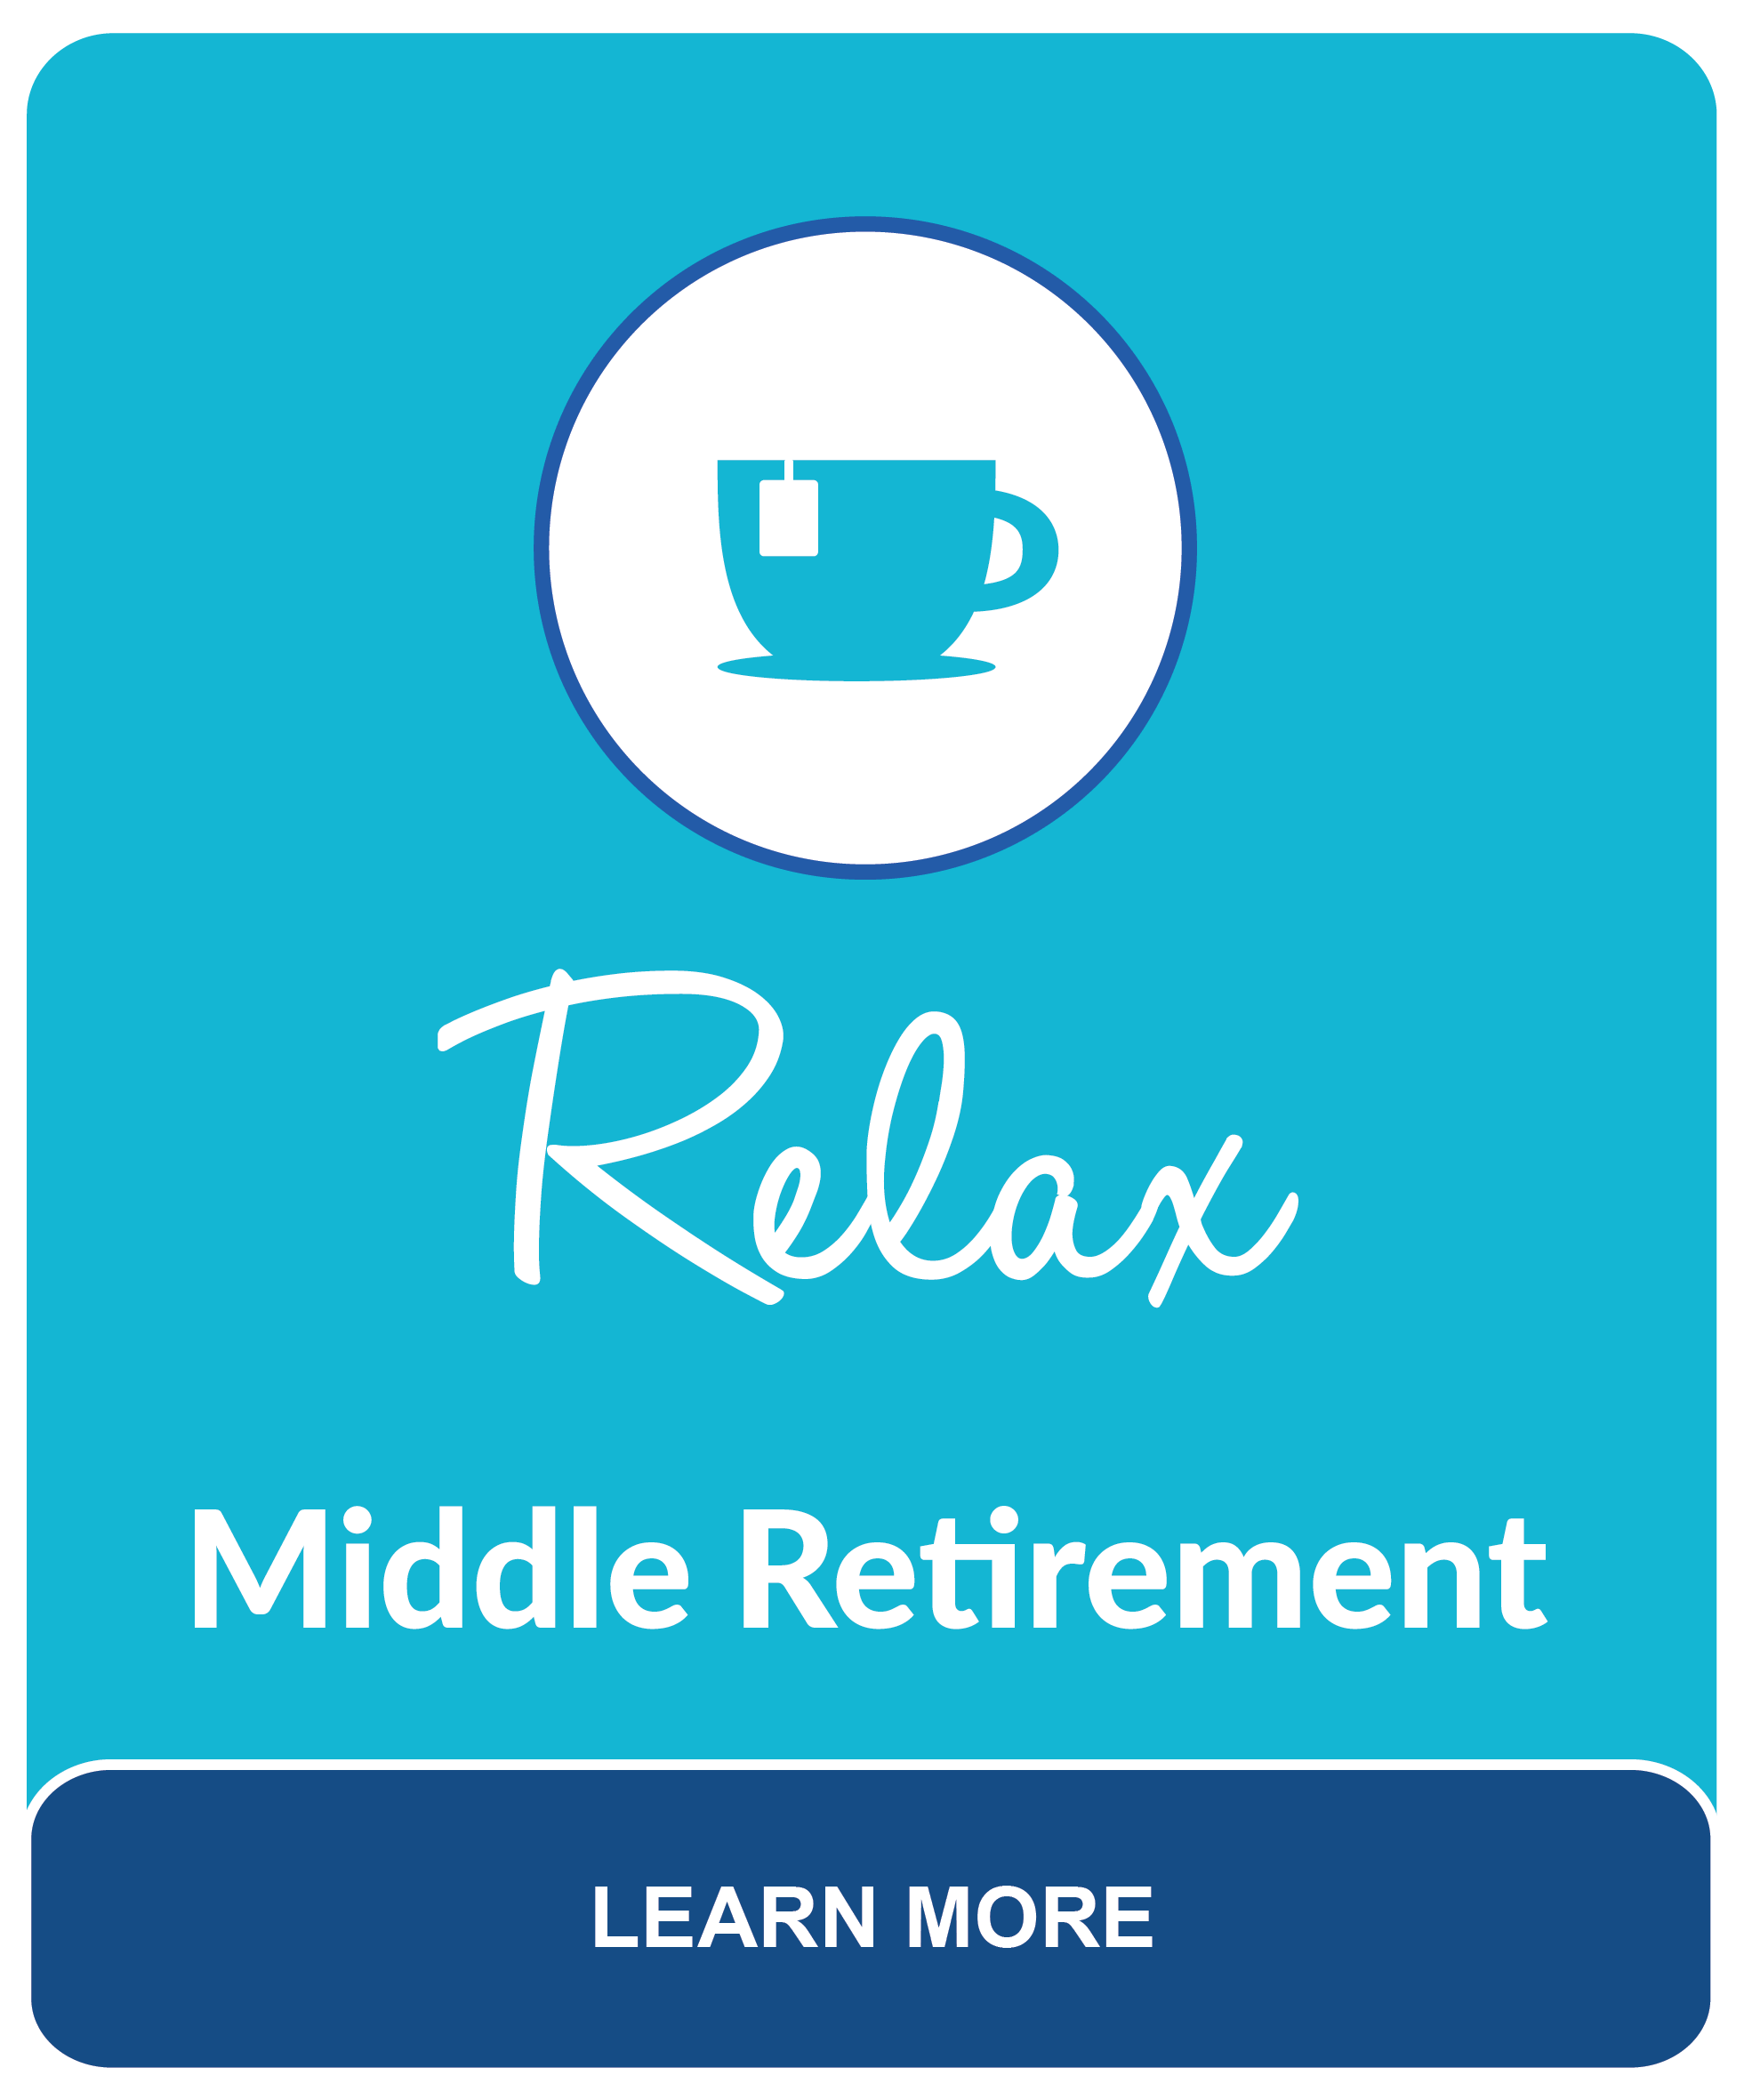 Relax is what we call Middle Retirement. It is important in this phase to make sure your finances are set up in a way to simplify your estate and minimize taxes. Consult our Fee-Only Retirement Advisor.